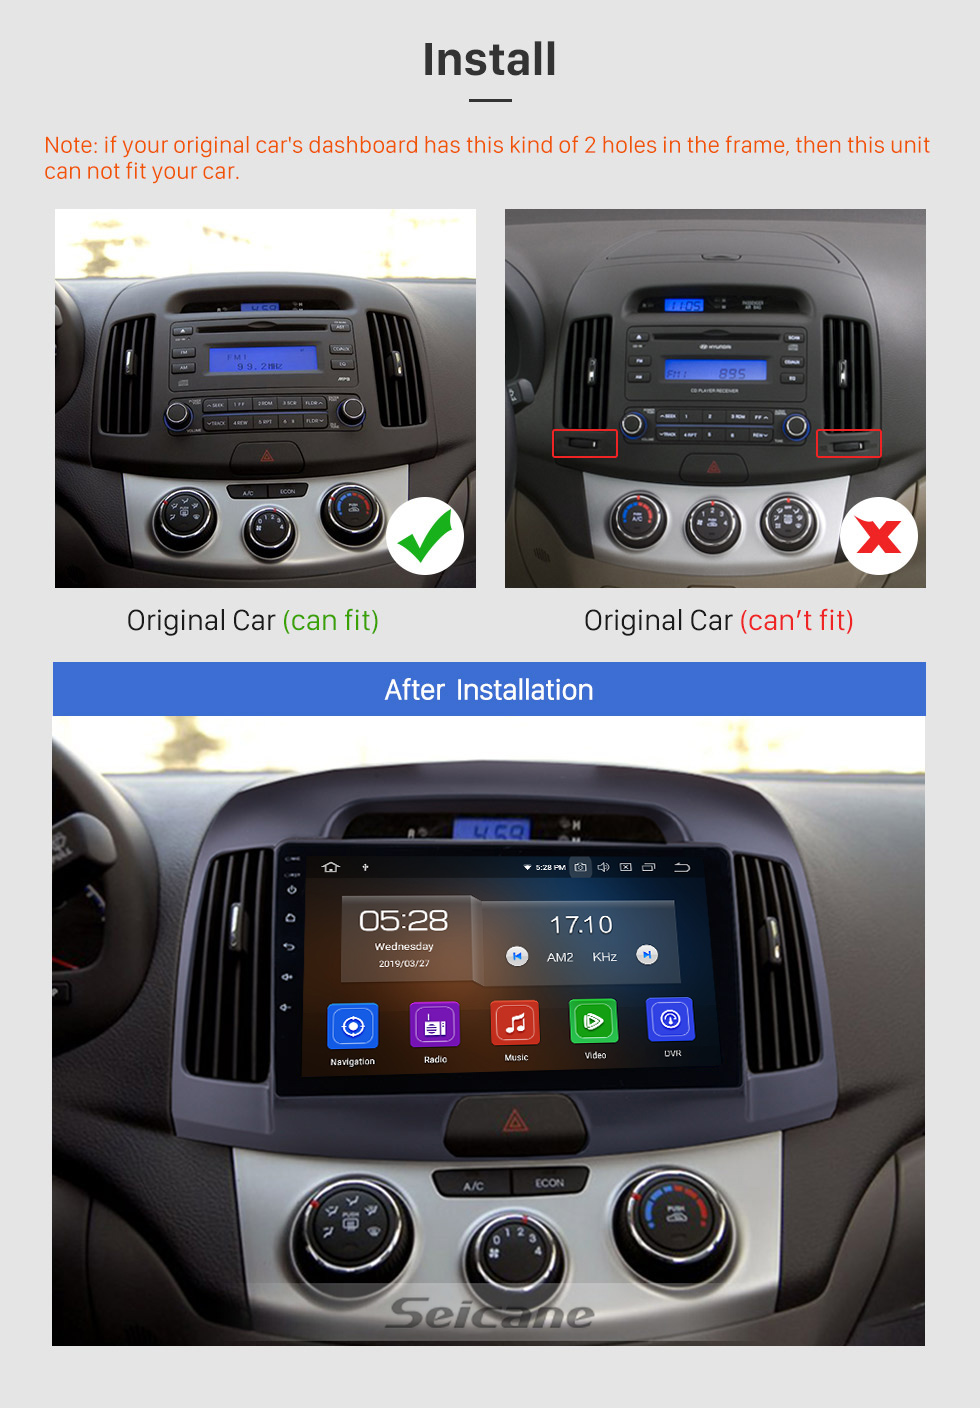 Seicane OEM Upgrade 9 inch Android 9.0 GPS Navigation Radio for 2008 2009 2010 Hyundai Elantra HD Touchscreen WIFI Bluetooth Digital TV SWC FM Carplay USB